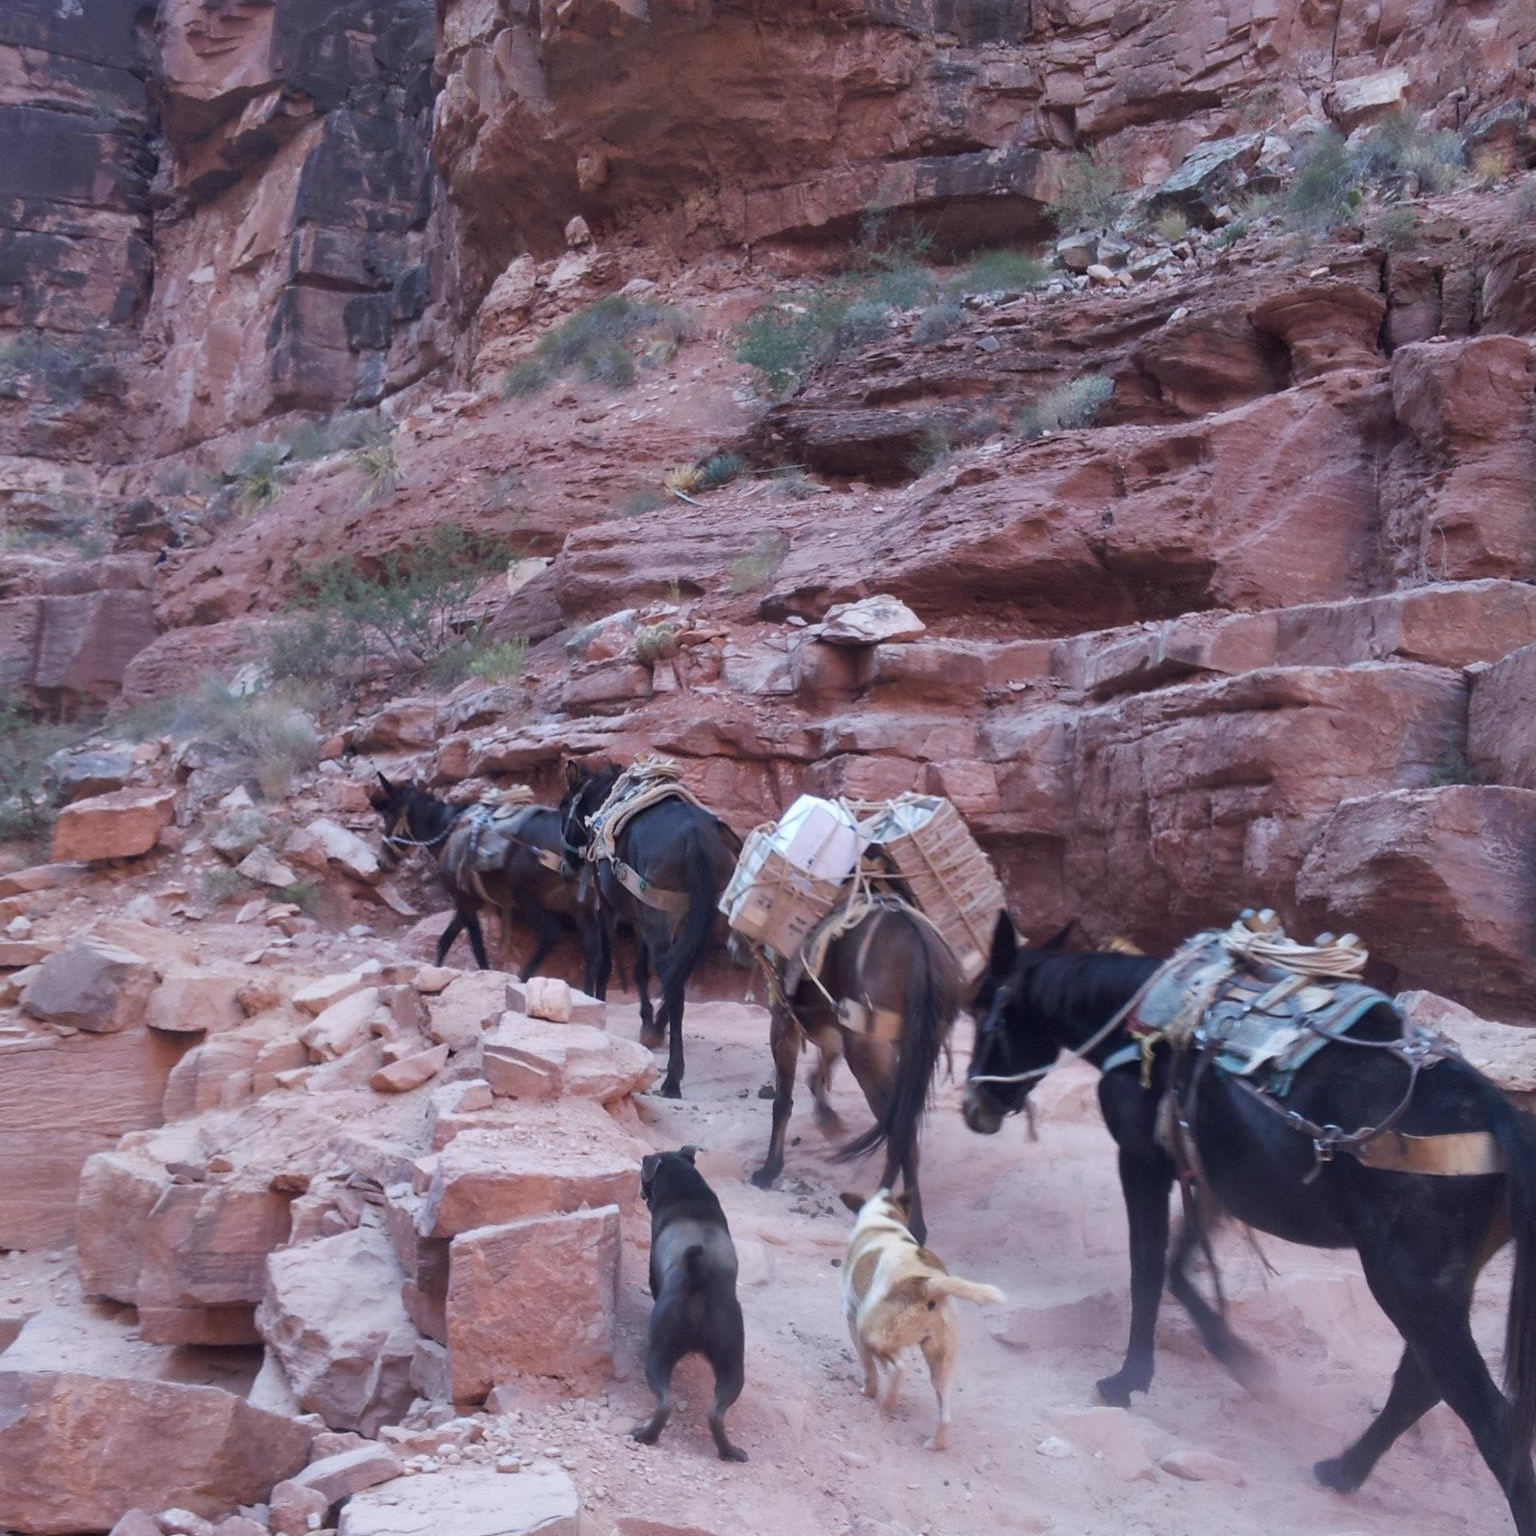 A train of donkeys being corralled by their owner's dogs